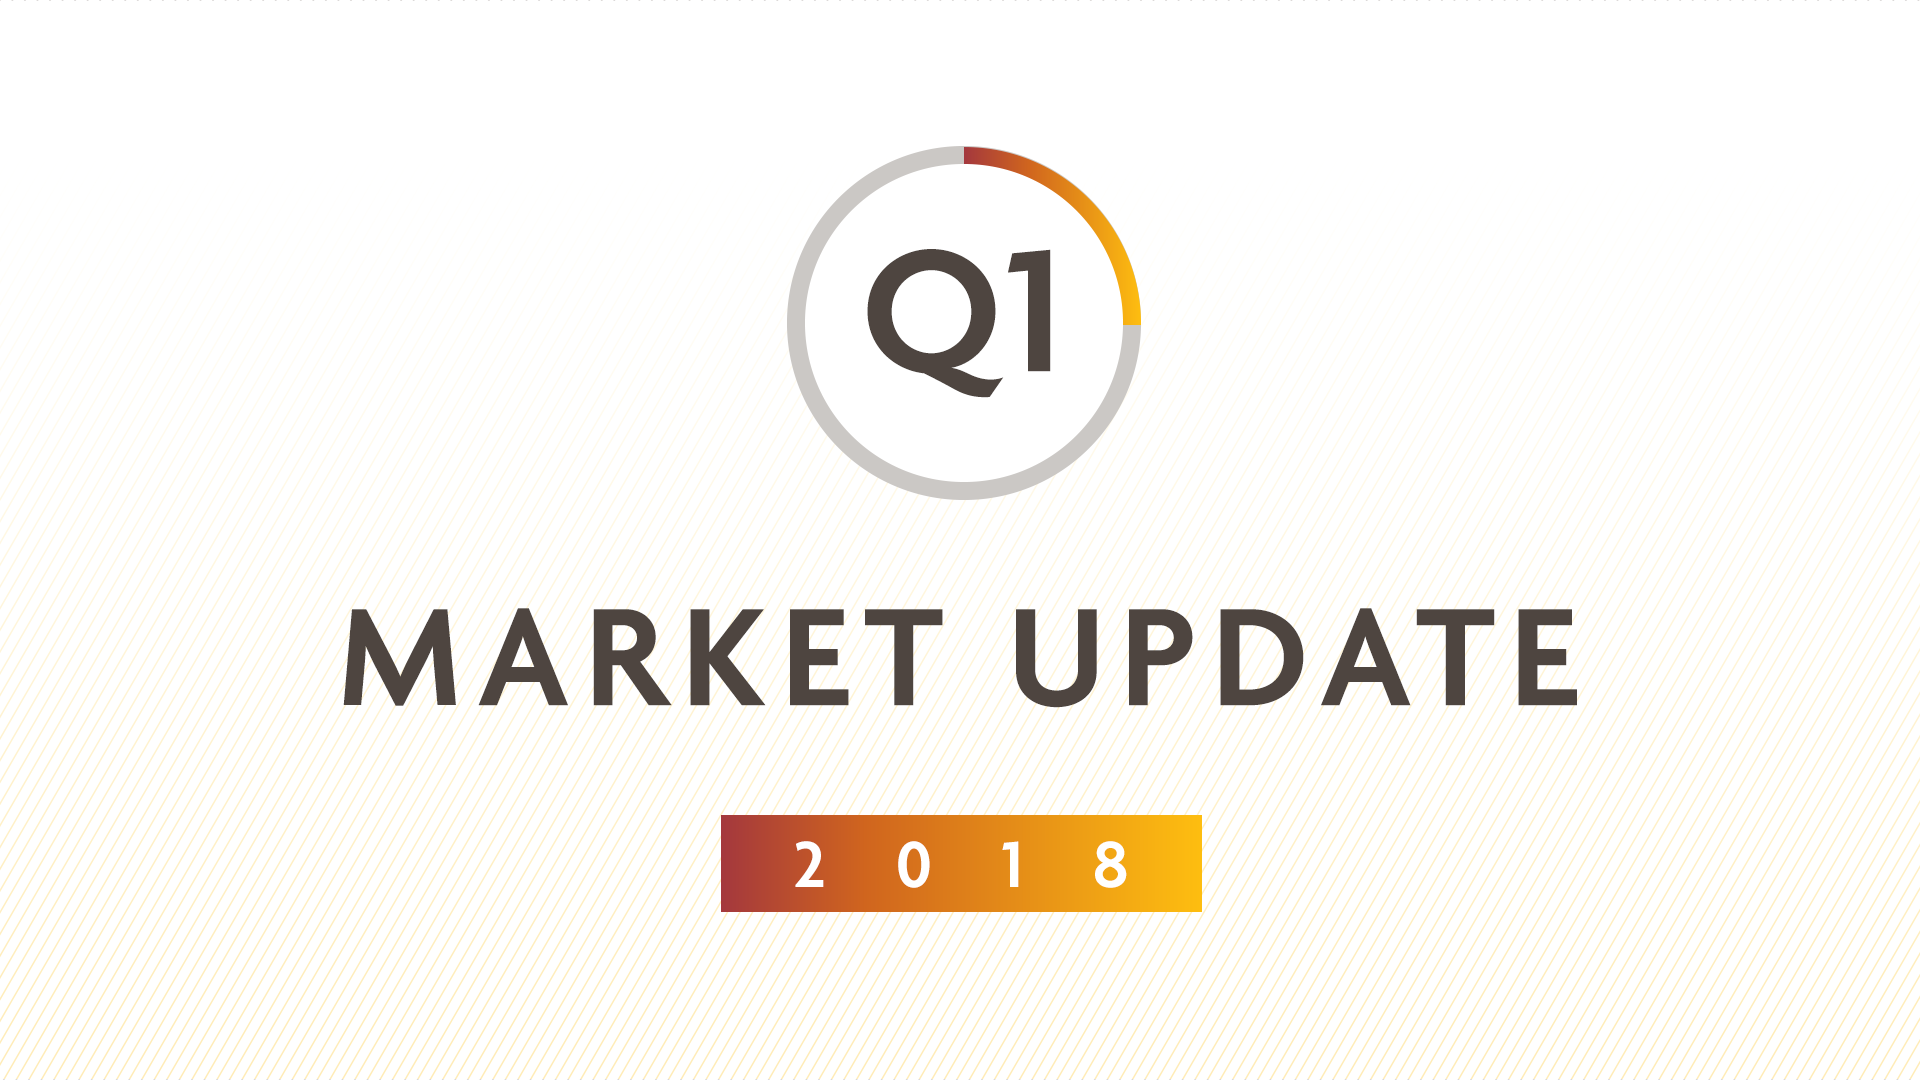 Q1 2018 MARKET UPDATE: Market turmoil -  what now?